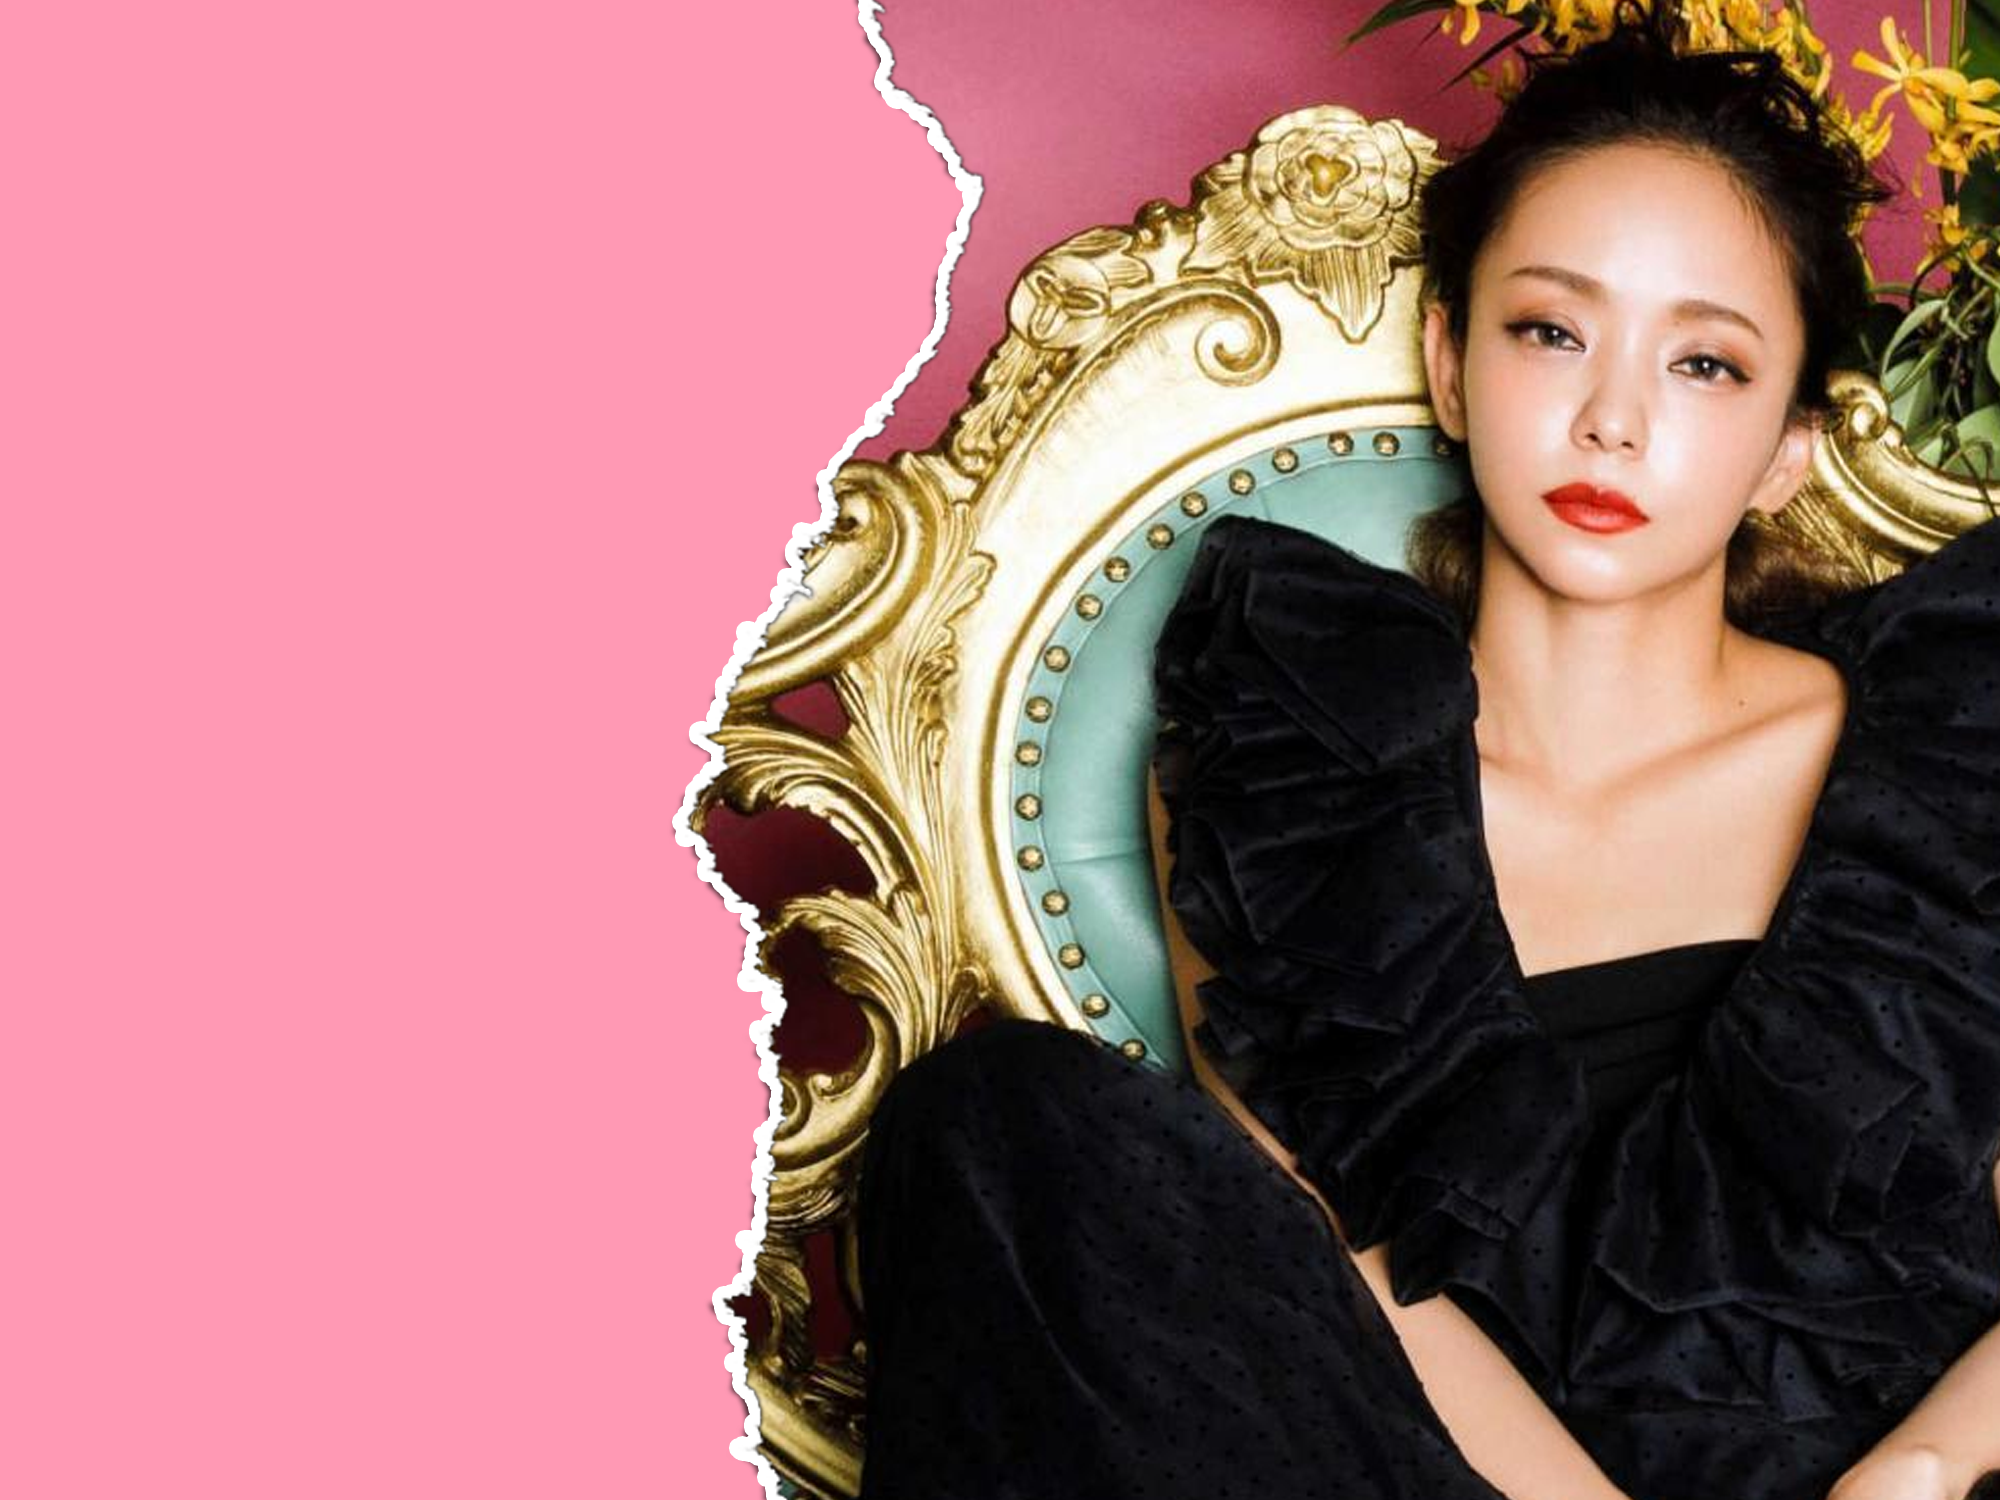 POP EMERGENCY: NAMIE AMURO OFFICIALLY CONFIRMS HER RETIREMENT